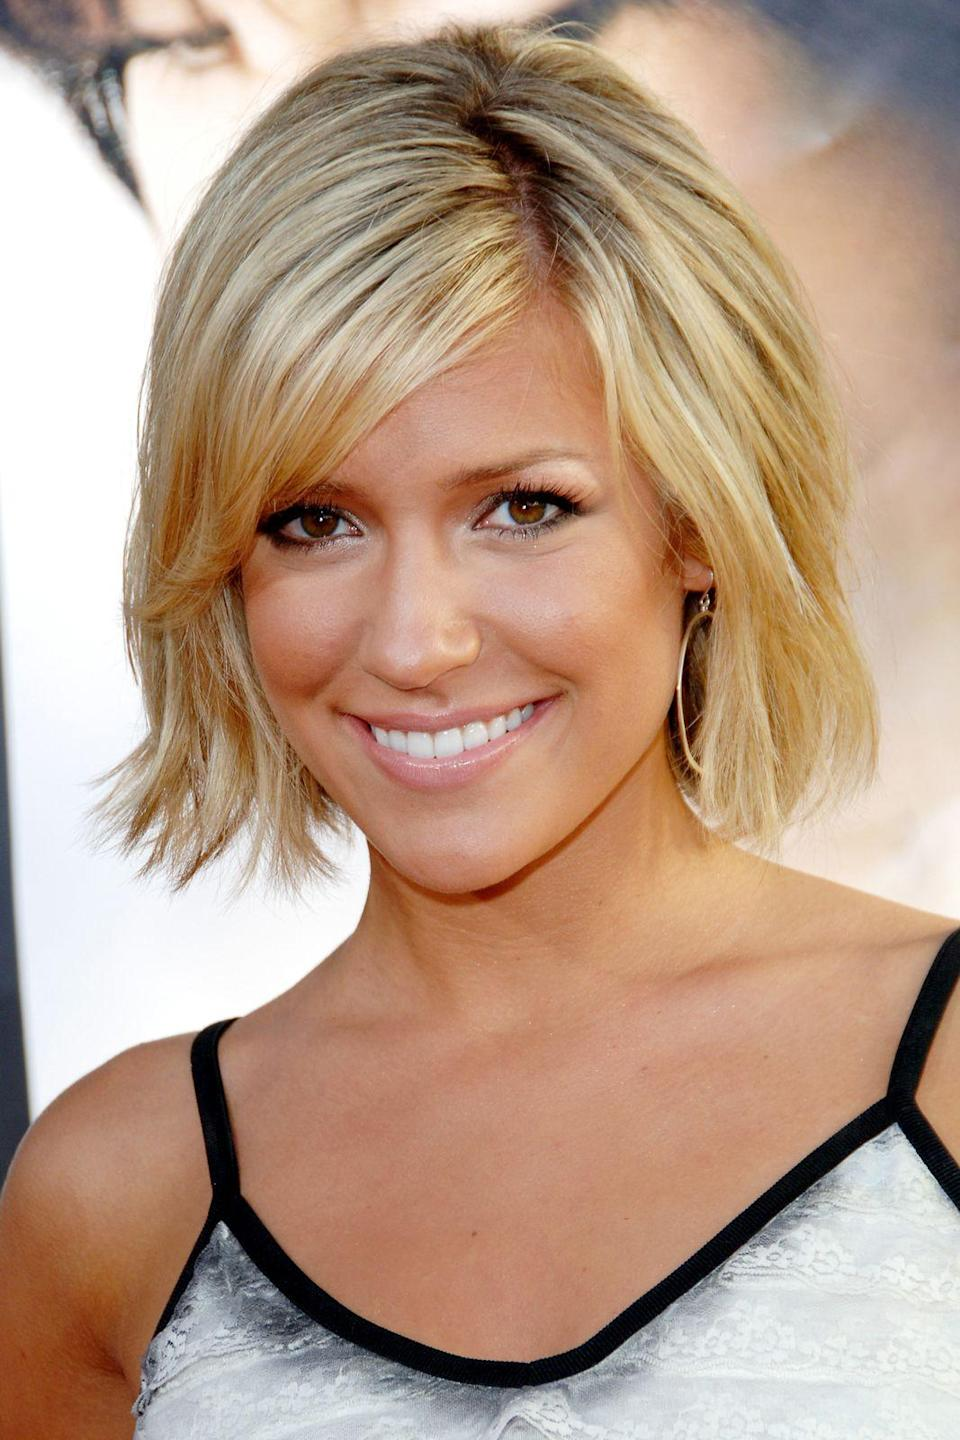 """<p><em>The Lake House</em> <strong>Movie Premiere, 2006</strong></p><p>""""This is the first time in my life that I cut my hair this short and I love it. I got it styled and I remember thinking, 'God, I love my haircut,' and then I could never make it look this good on my own. [Laughs.] So that was unfortunate. I also got my makeup done for this premiere and I still use the makeup artist today, <a href=""""https://www.instagram.com/karanmitchellmua/?hl=en"""" rel=""""nofollow noopener"""" target=""""_blank"""" data-ylk=""""slk:Karan Mitchell"""" class=""""link rapid-noclick-resp"""">Karan Mitchell</a>. She's <em>the</em> best. This is, to this day, one of my favourite looks.""""</p><span class=""""copyright"""">Photo: Jon Kopaloff/FilmMagic.</span>"""